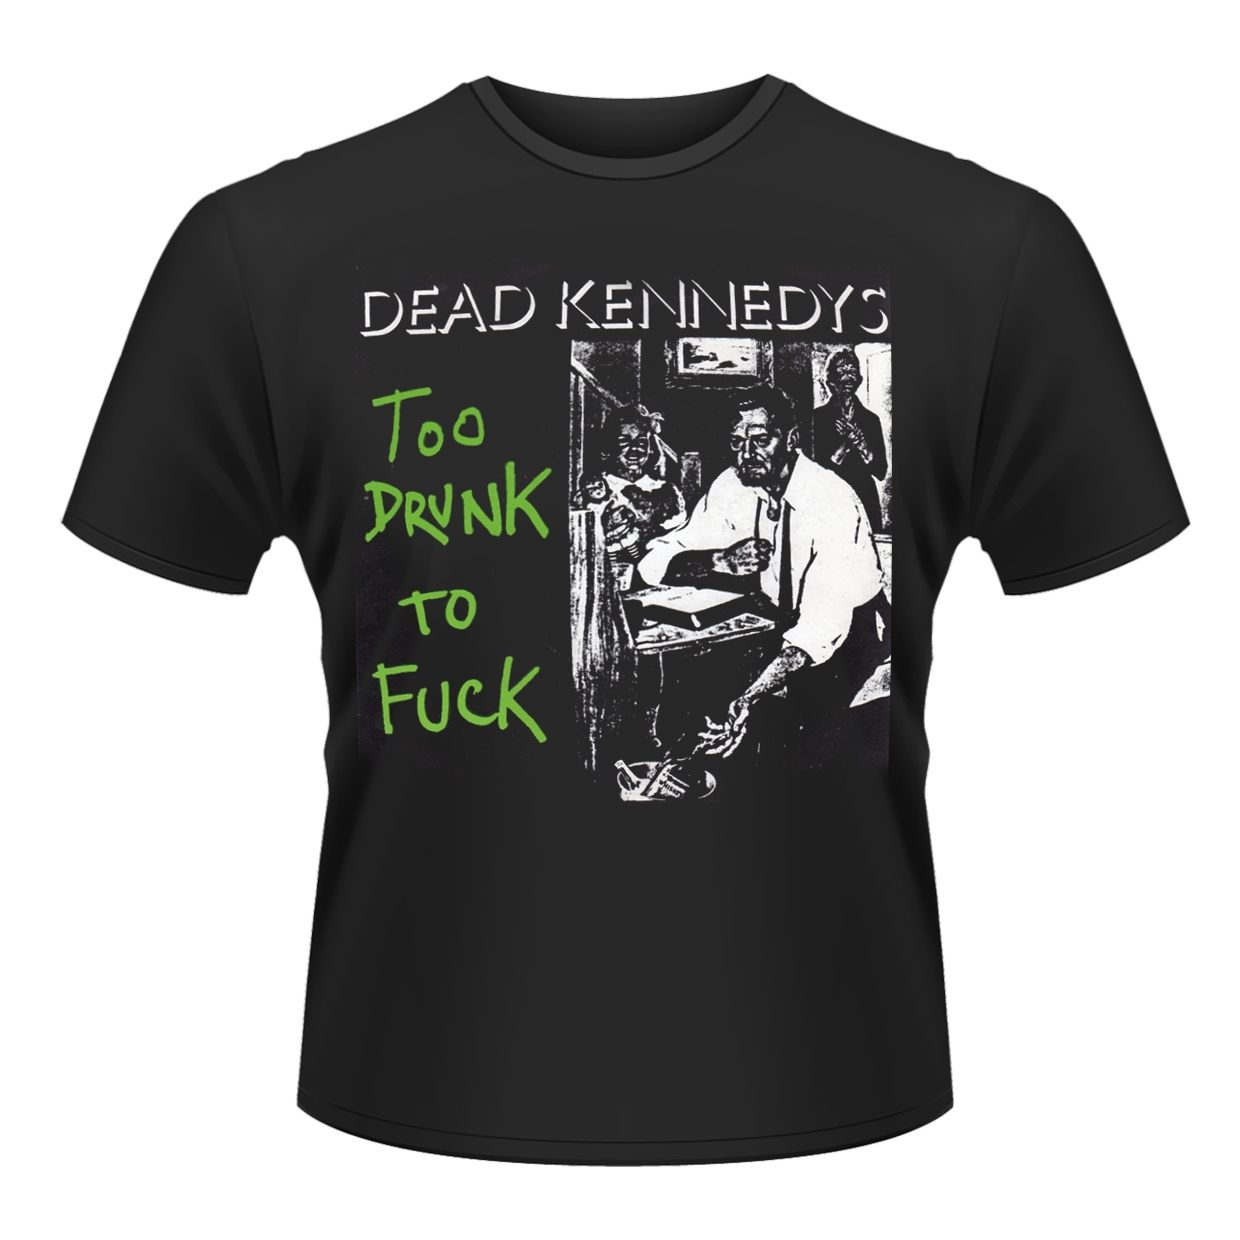 Dead kennedys too drunk to fuck. is oblibe dating harder for men or women reddit.